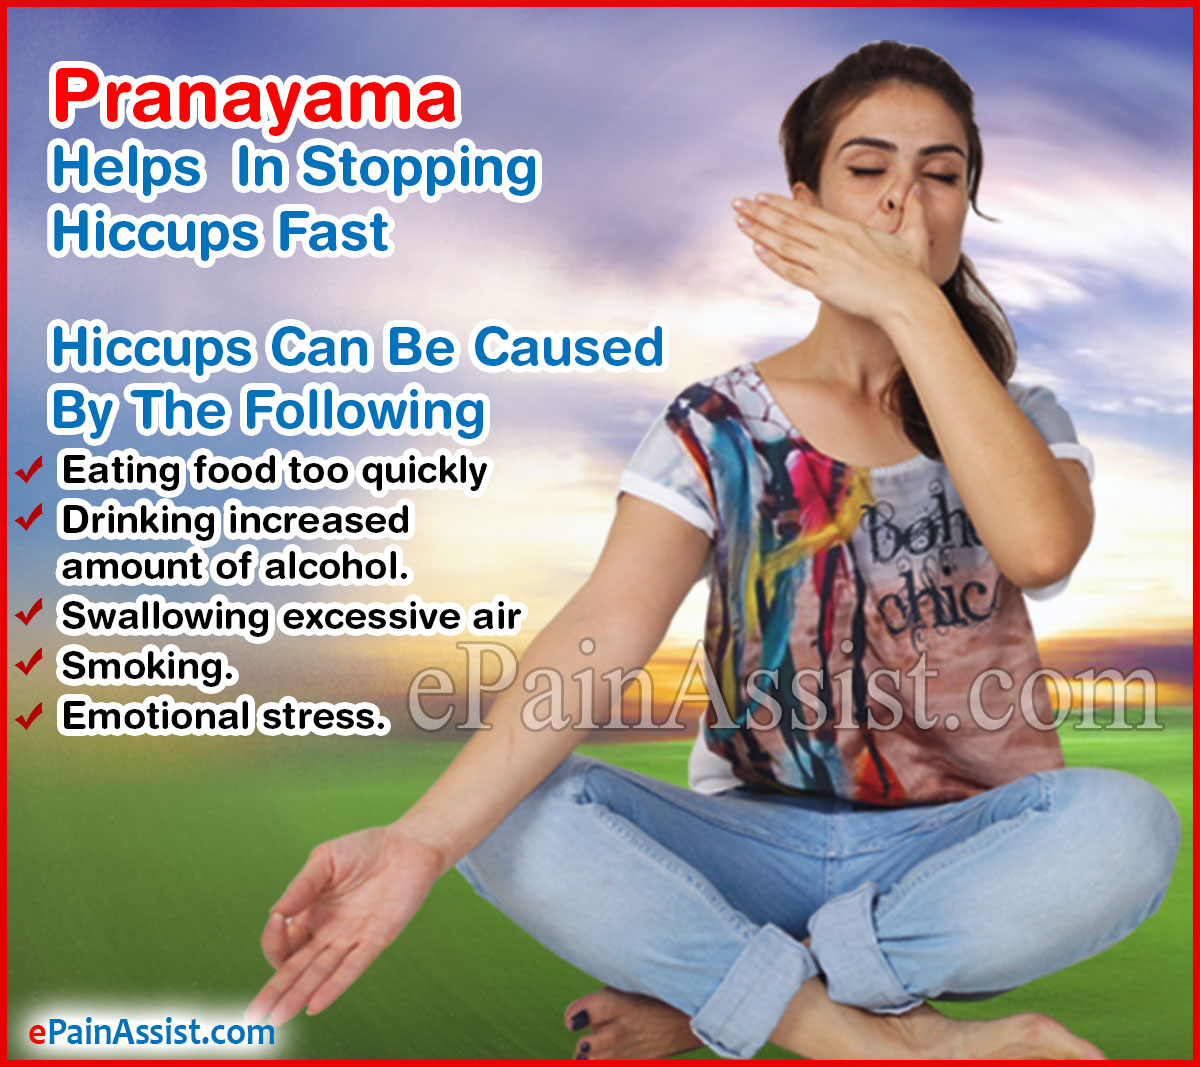 Can You Get Hiccups From Drinking Too Fast